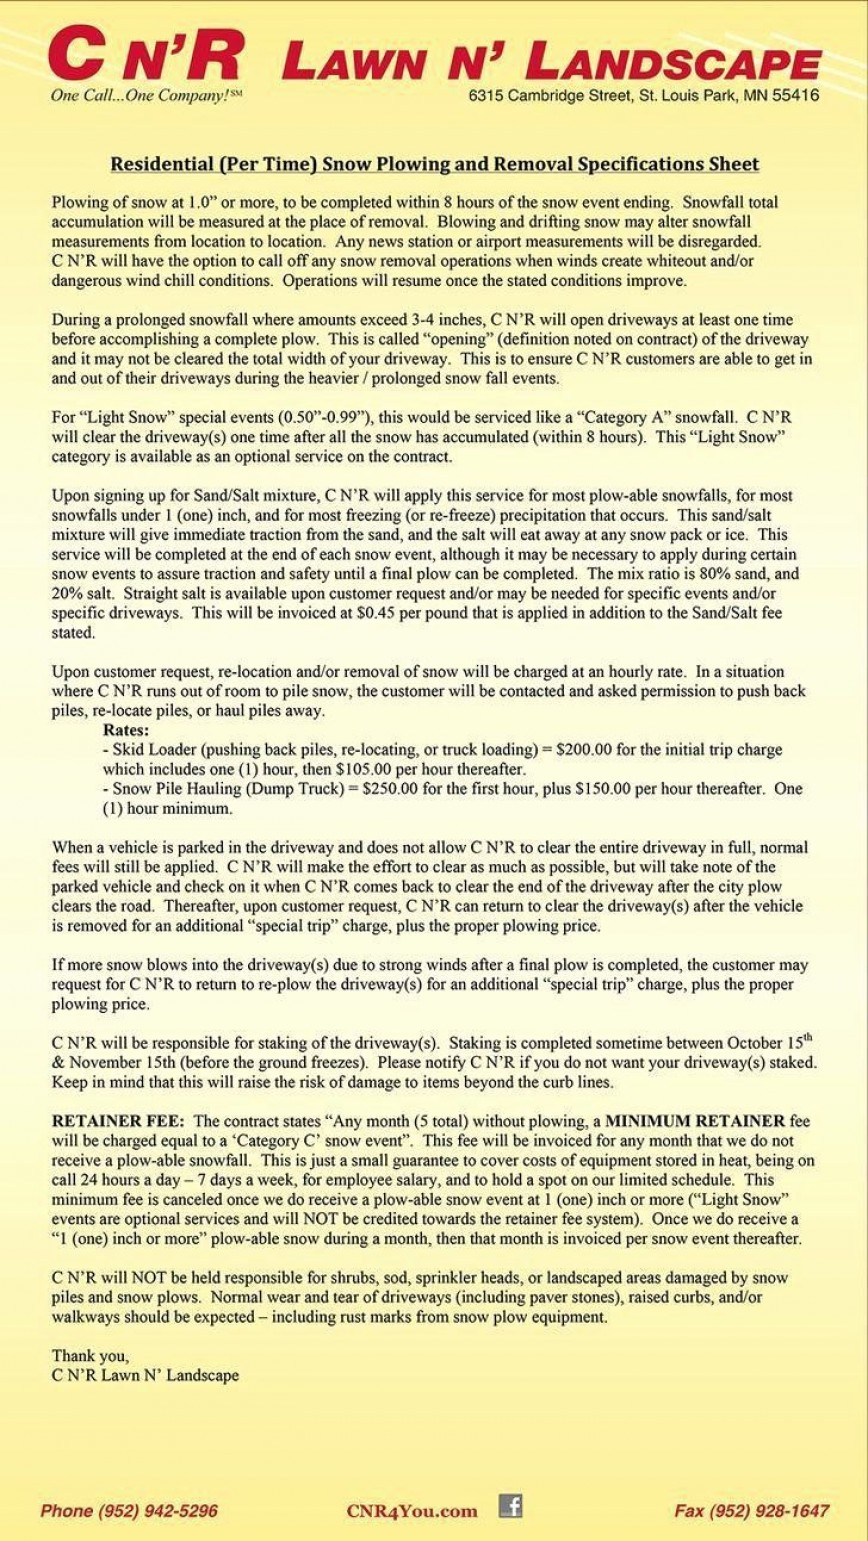 007 Simple Snow Removal Contract Template Highest Clarity  Templates Plow Pdf Clearing